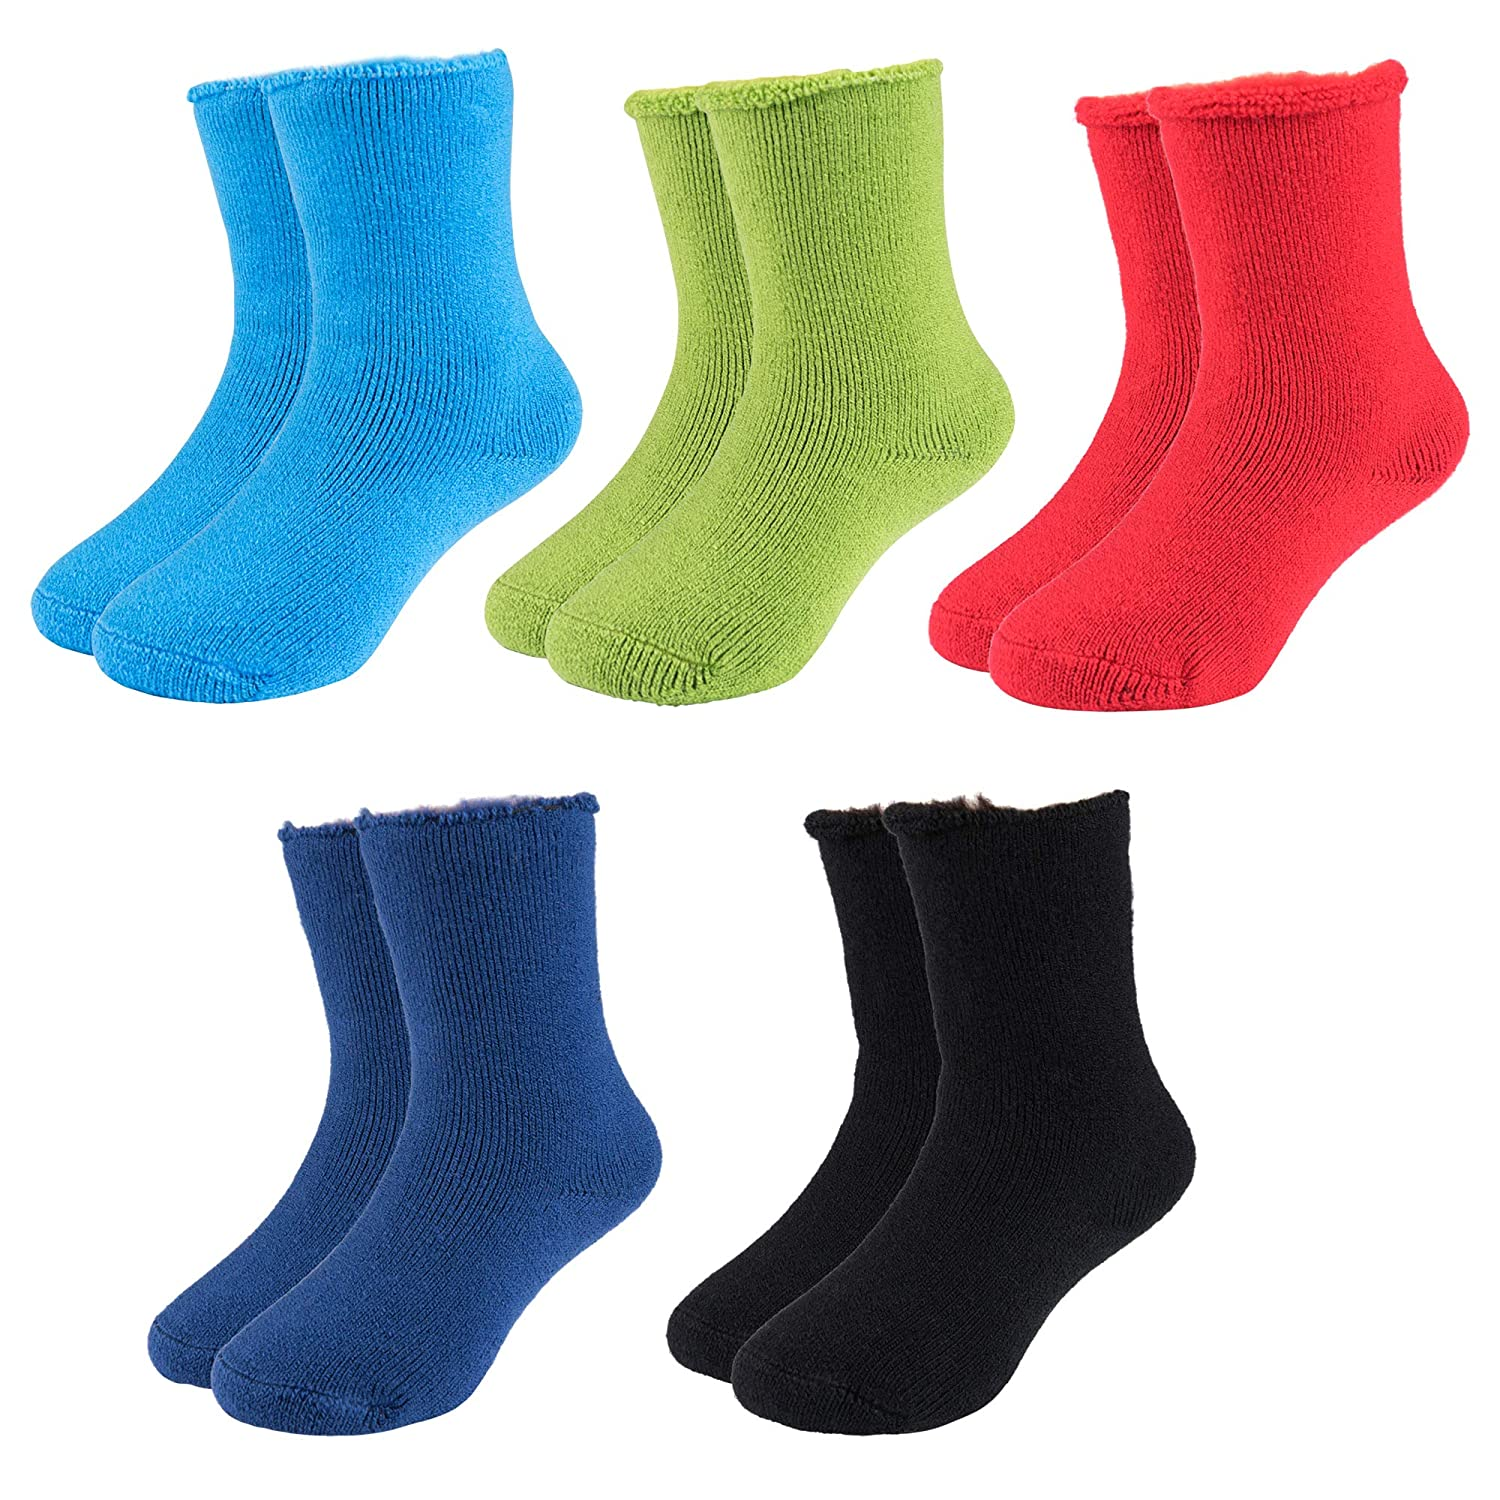 Hot Feet Toddler 5pk Crew Thermal Socks w//Soft Thick Brushing Inside Gripped//Non Gripped Combo